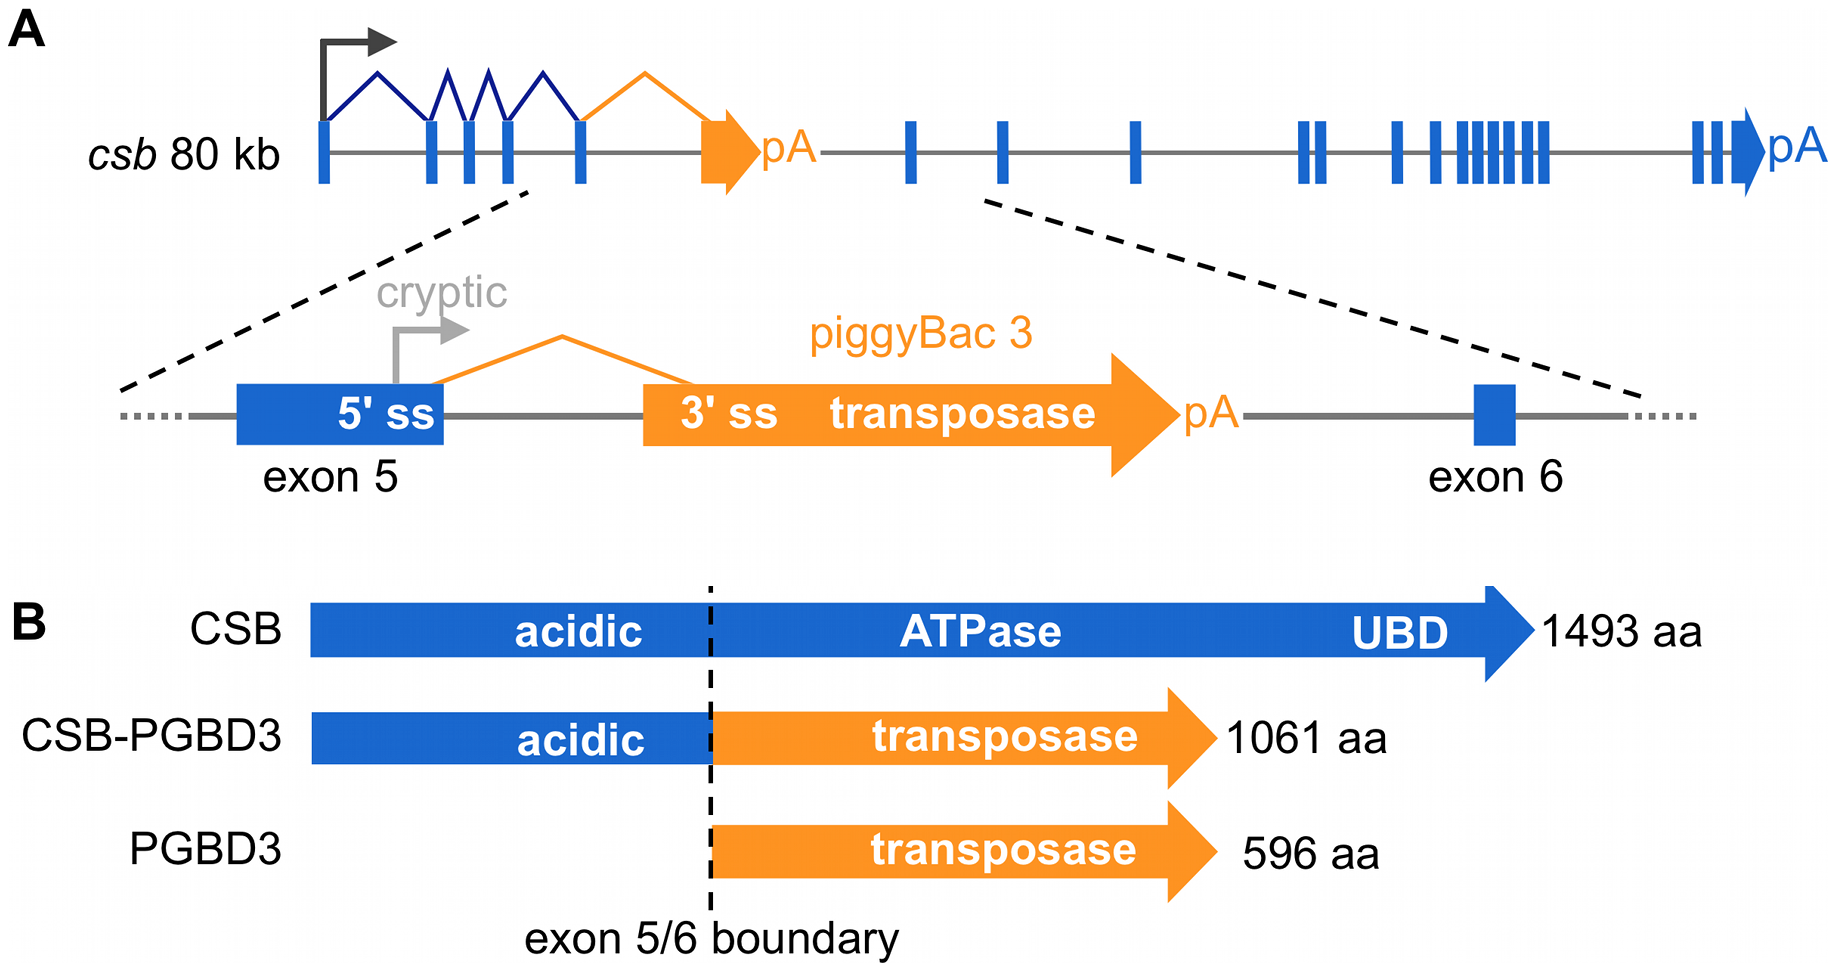 The CSB-PGBD3 fusion protein is abundantly expressed by alternative splicing and polyadenylation of the CSB transcript.